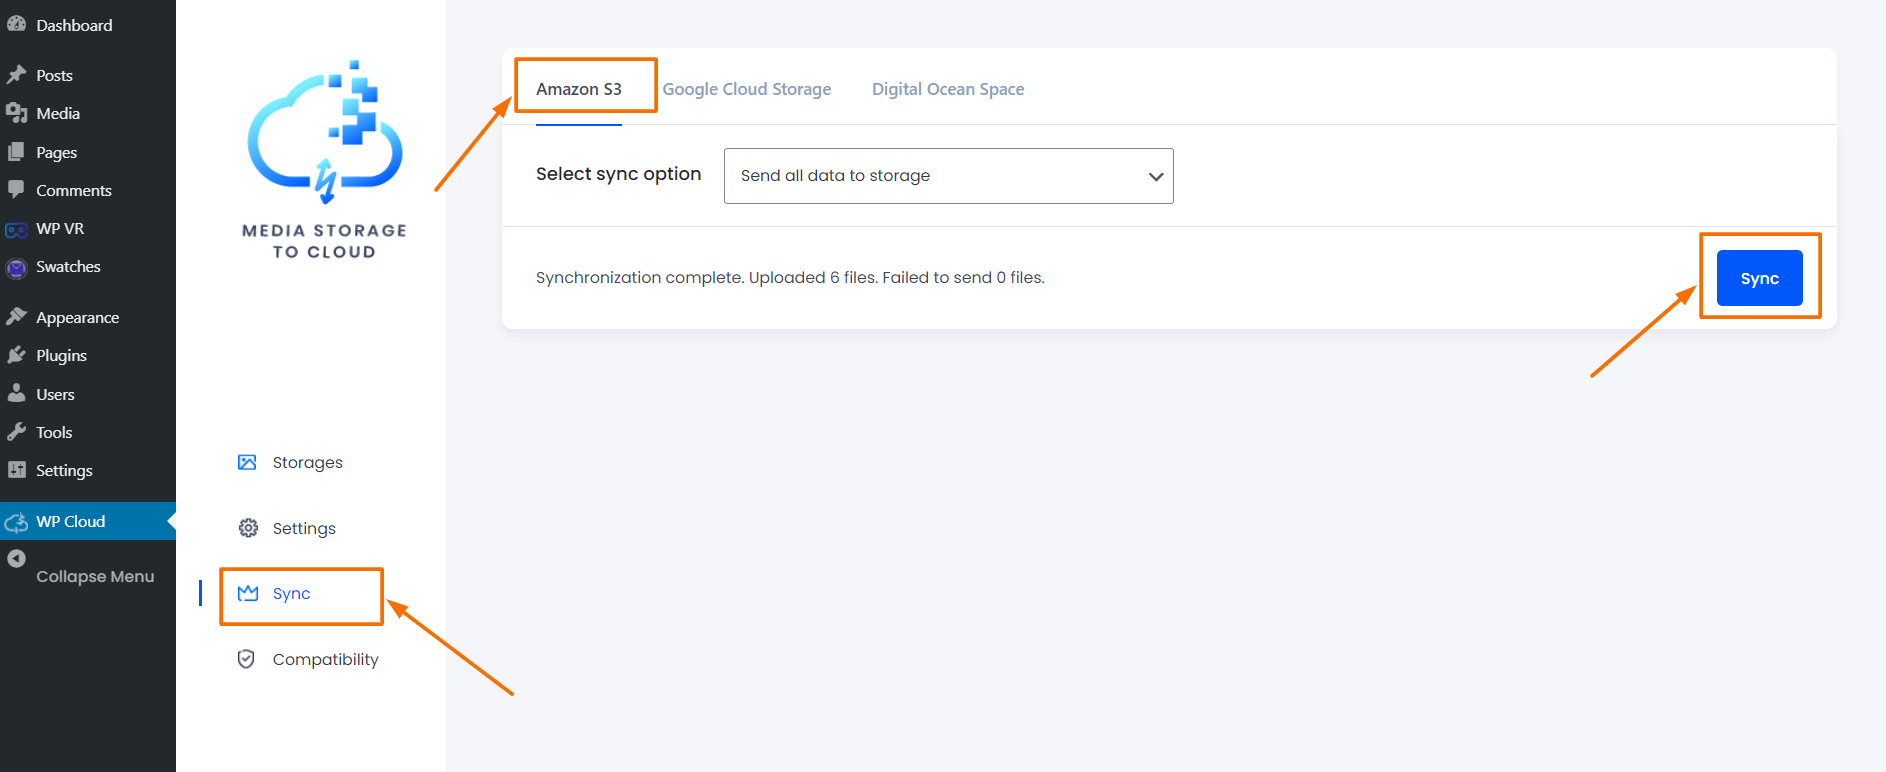 Media Storage to Cloud Syncing Page